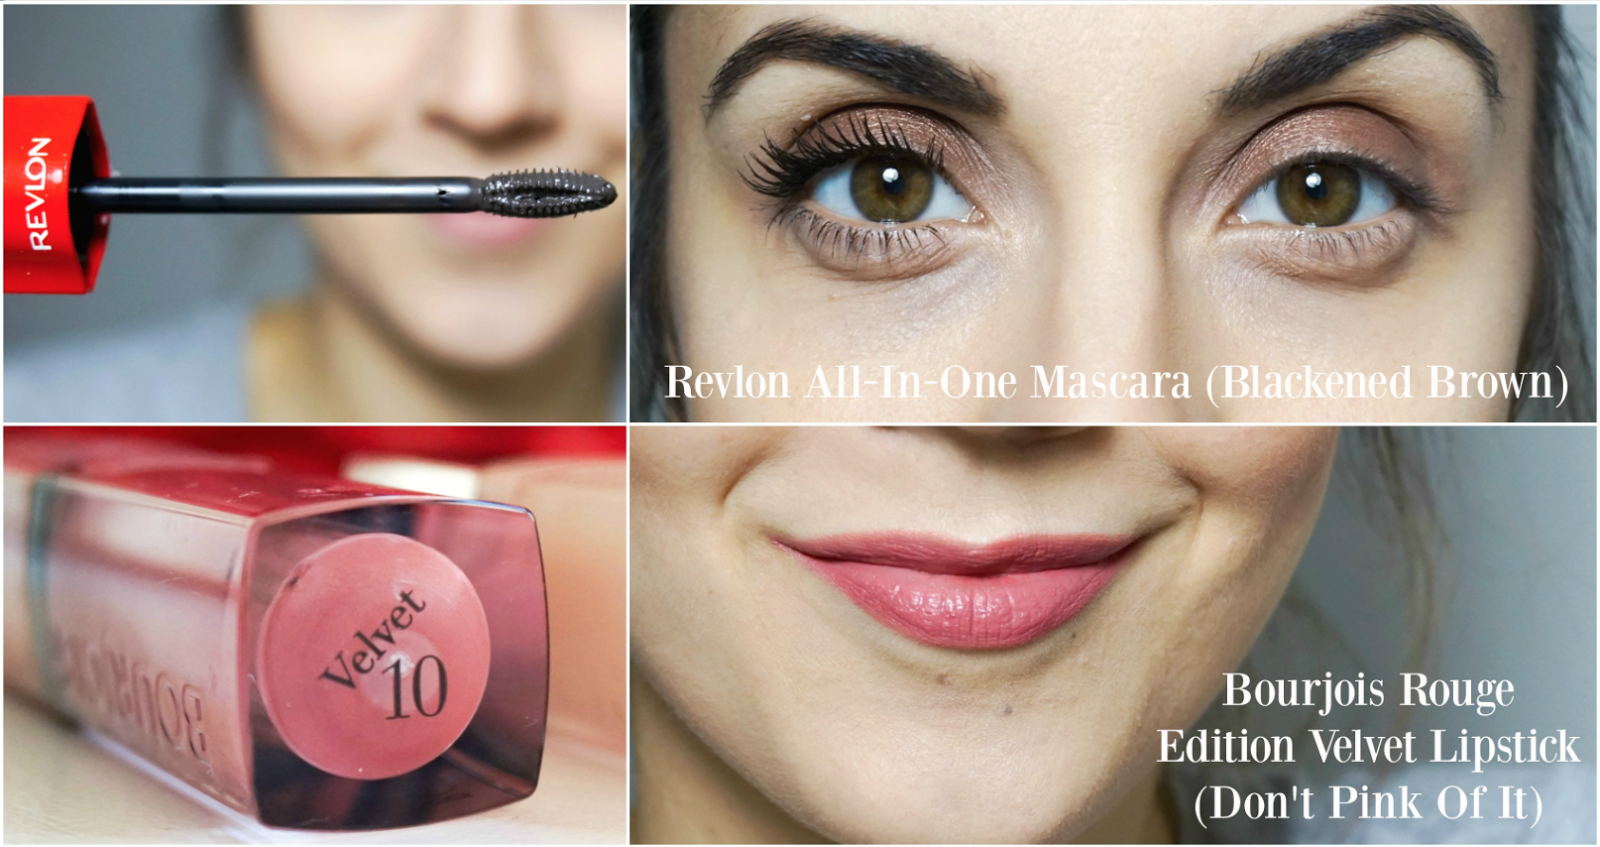 NEW at the Drugstore featuring Bourjois, L'Oreal, Revlon & Barry M